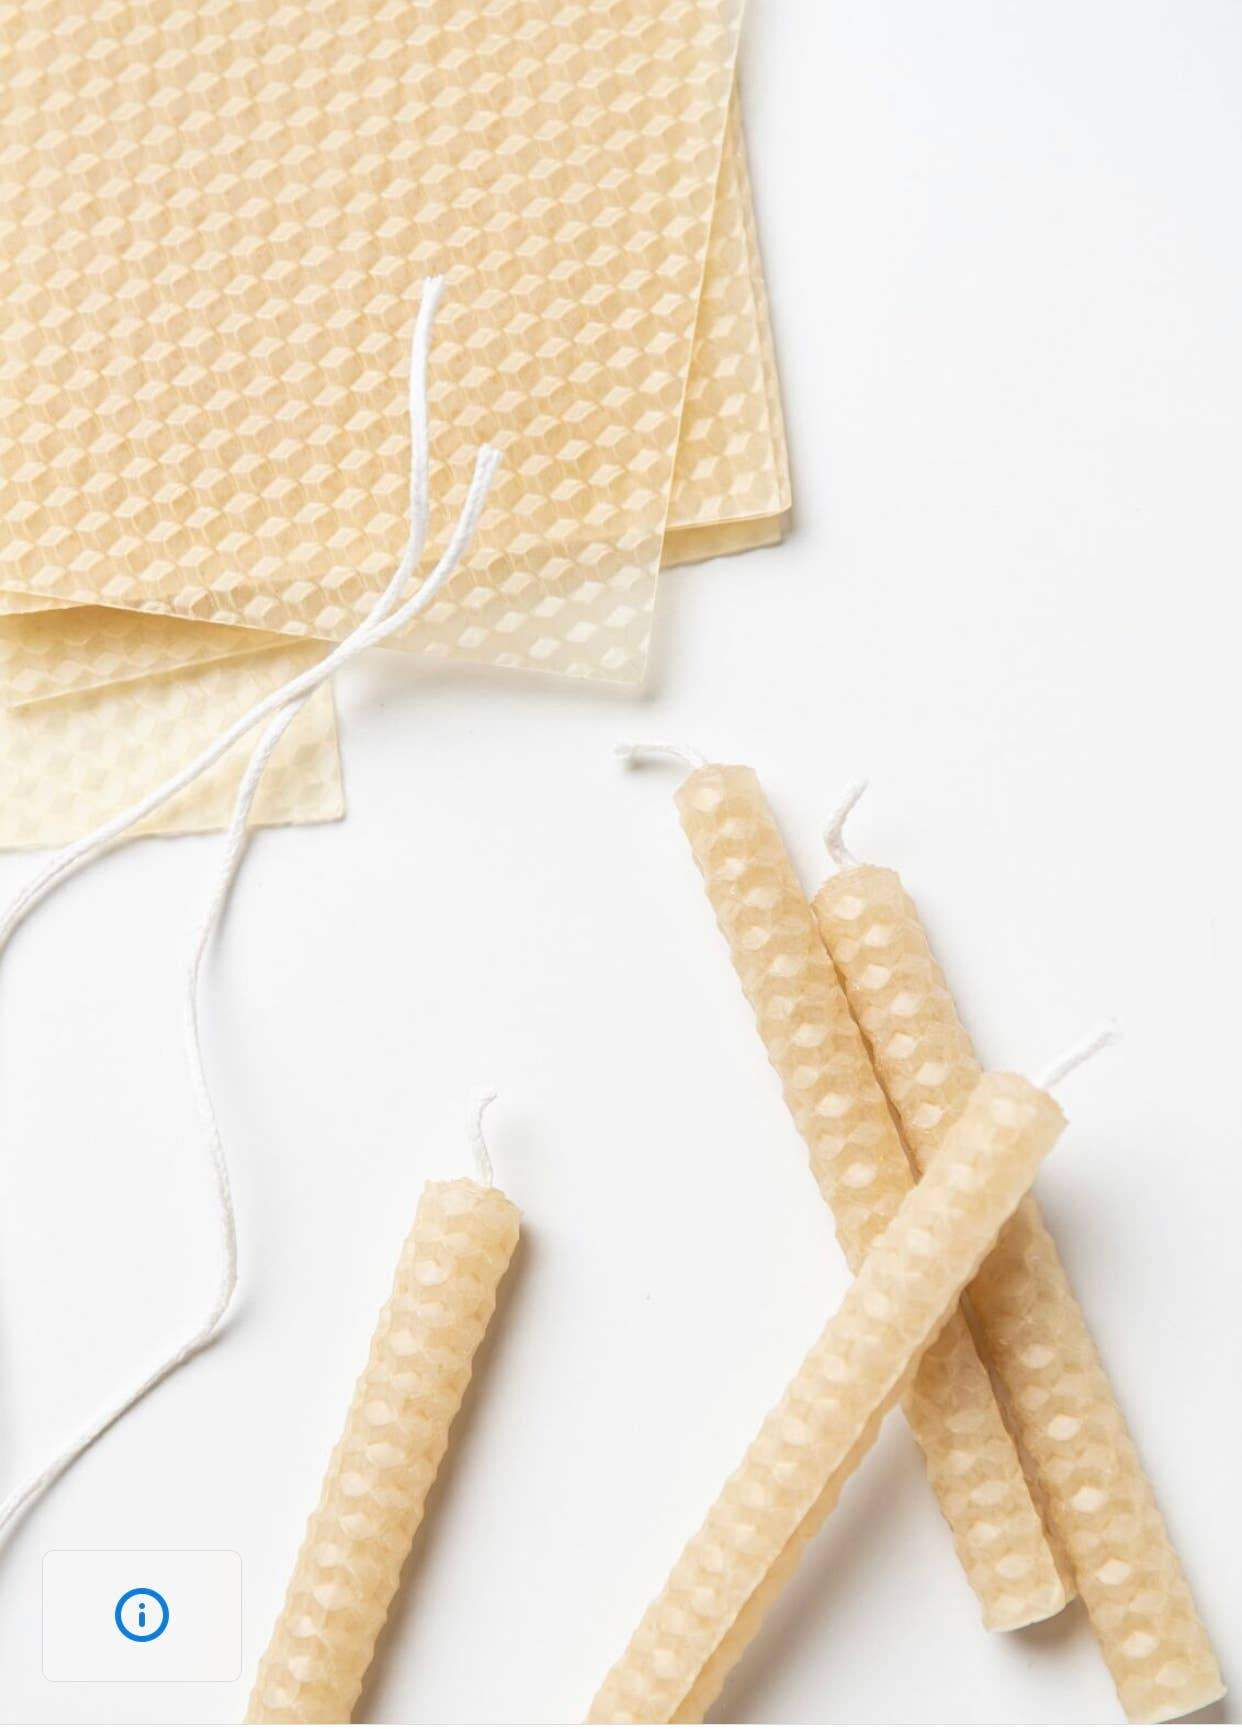 eco-kids Beeswax Candle Making Kit  *NEW*